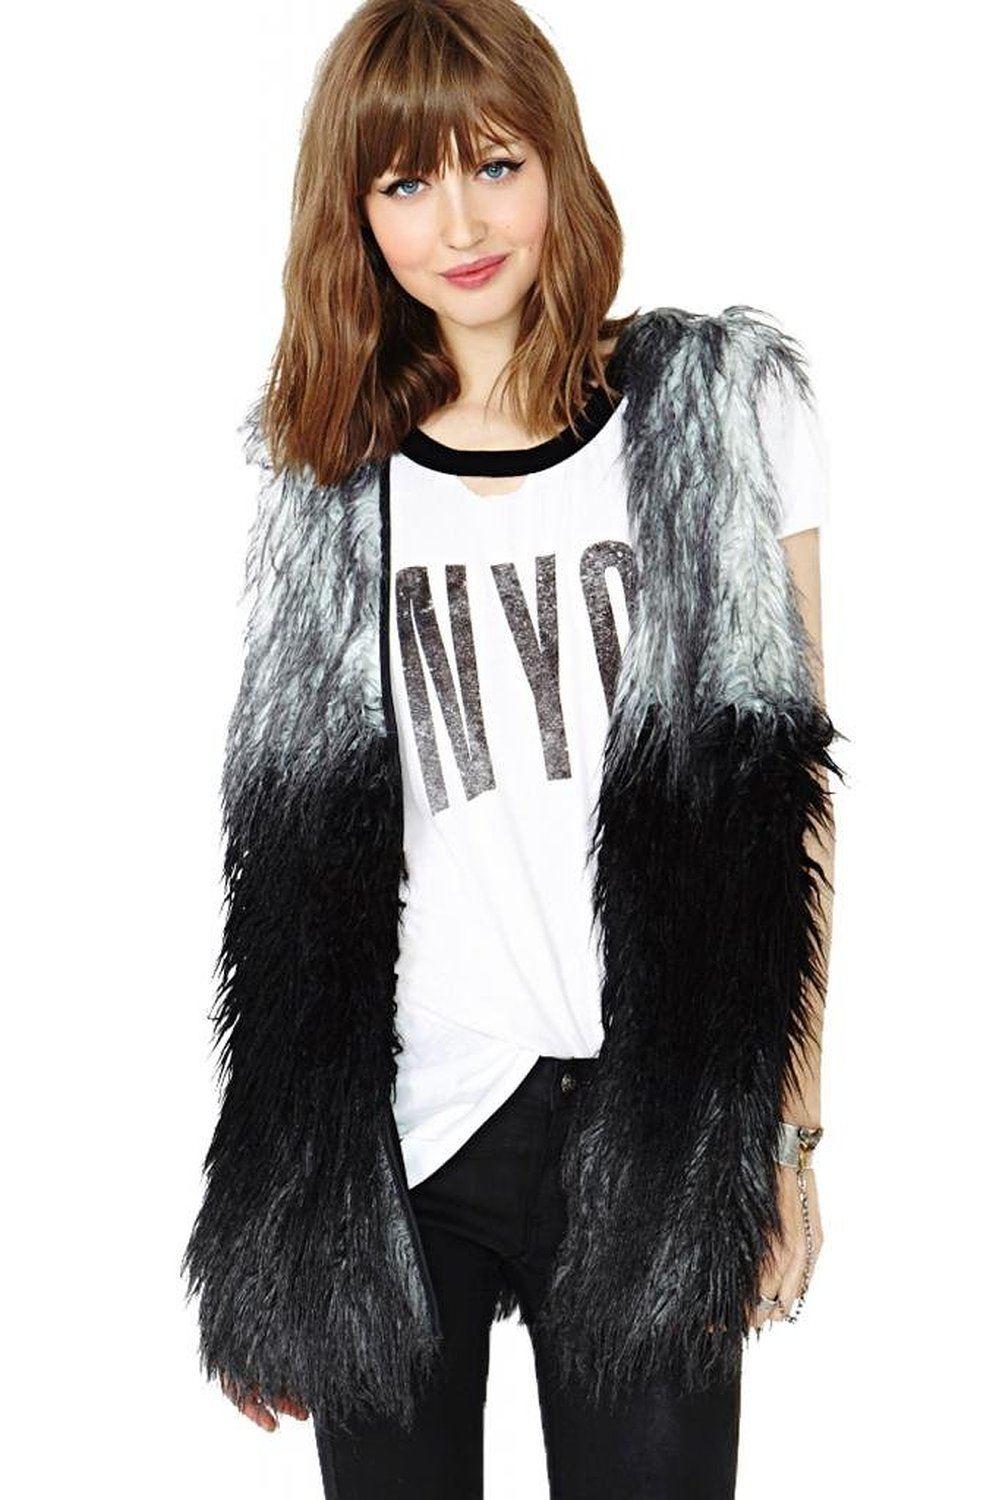 Superbaby women fashion ombre stitched collarless faux fur vest gilet waistcoat at amazon women's clothing store: